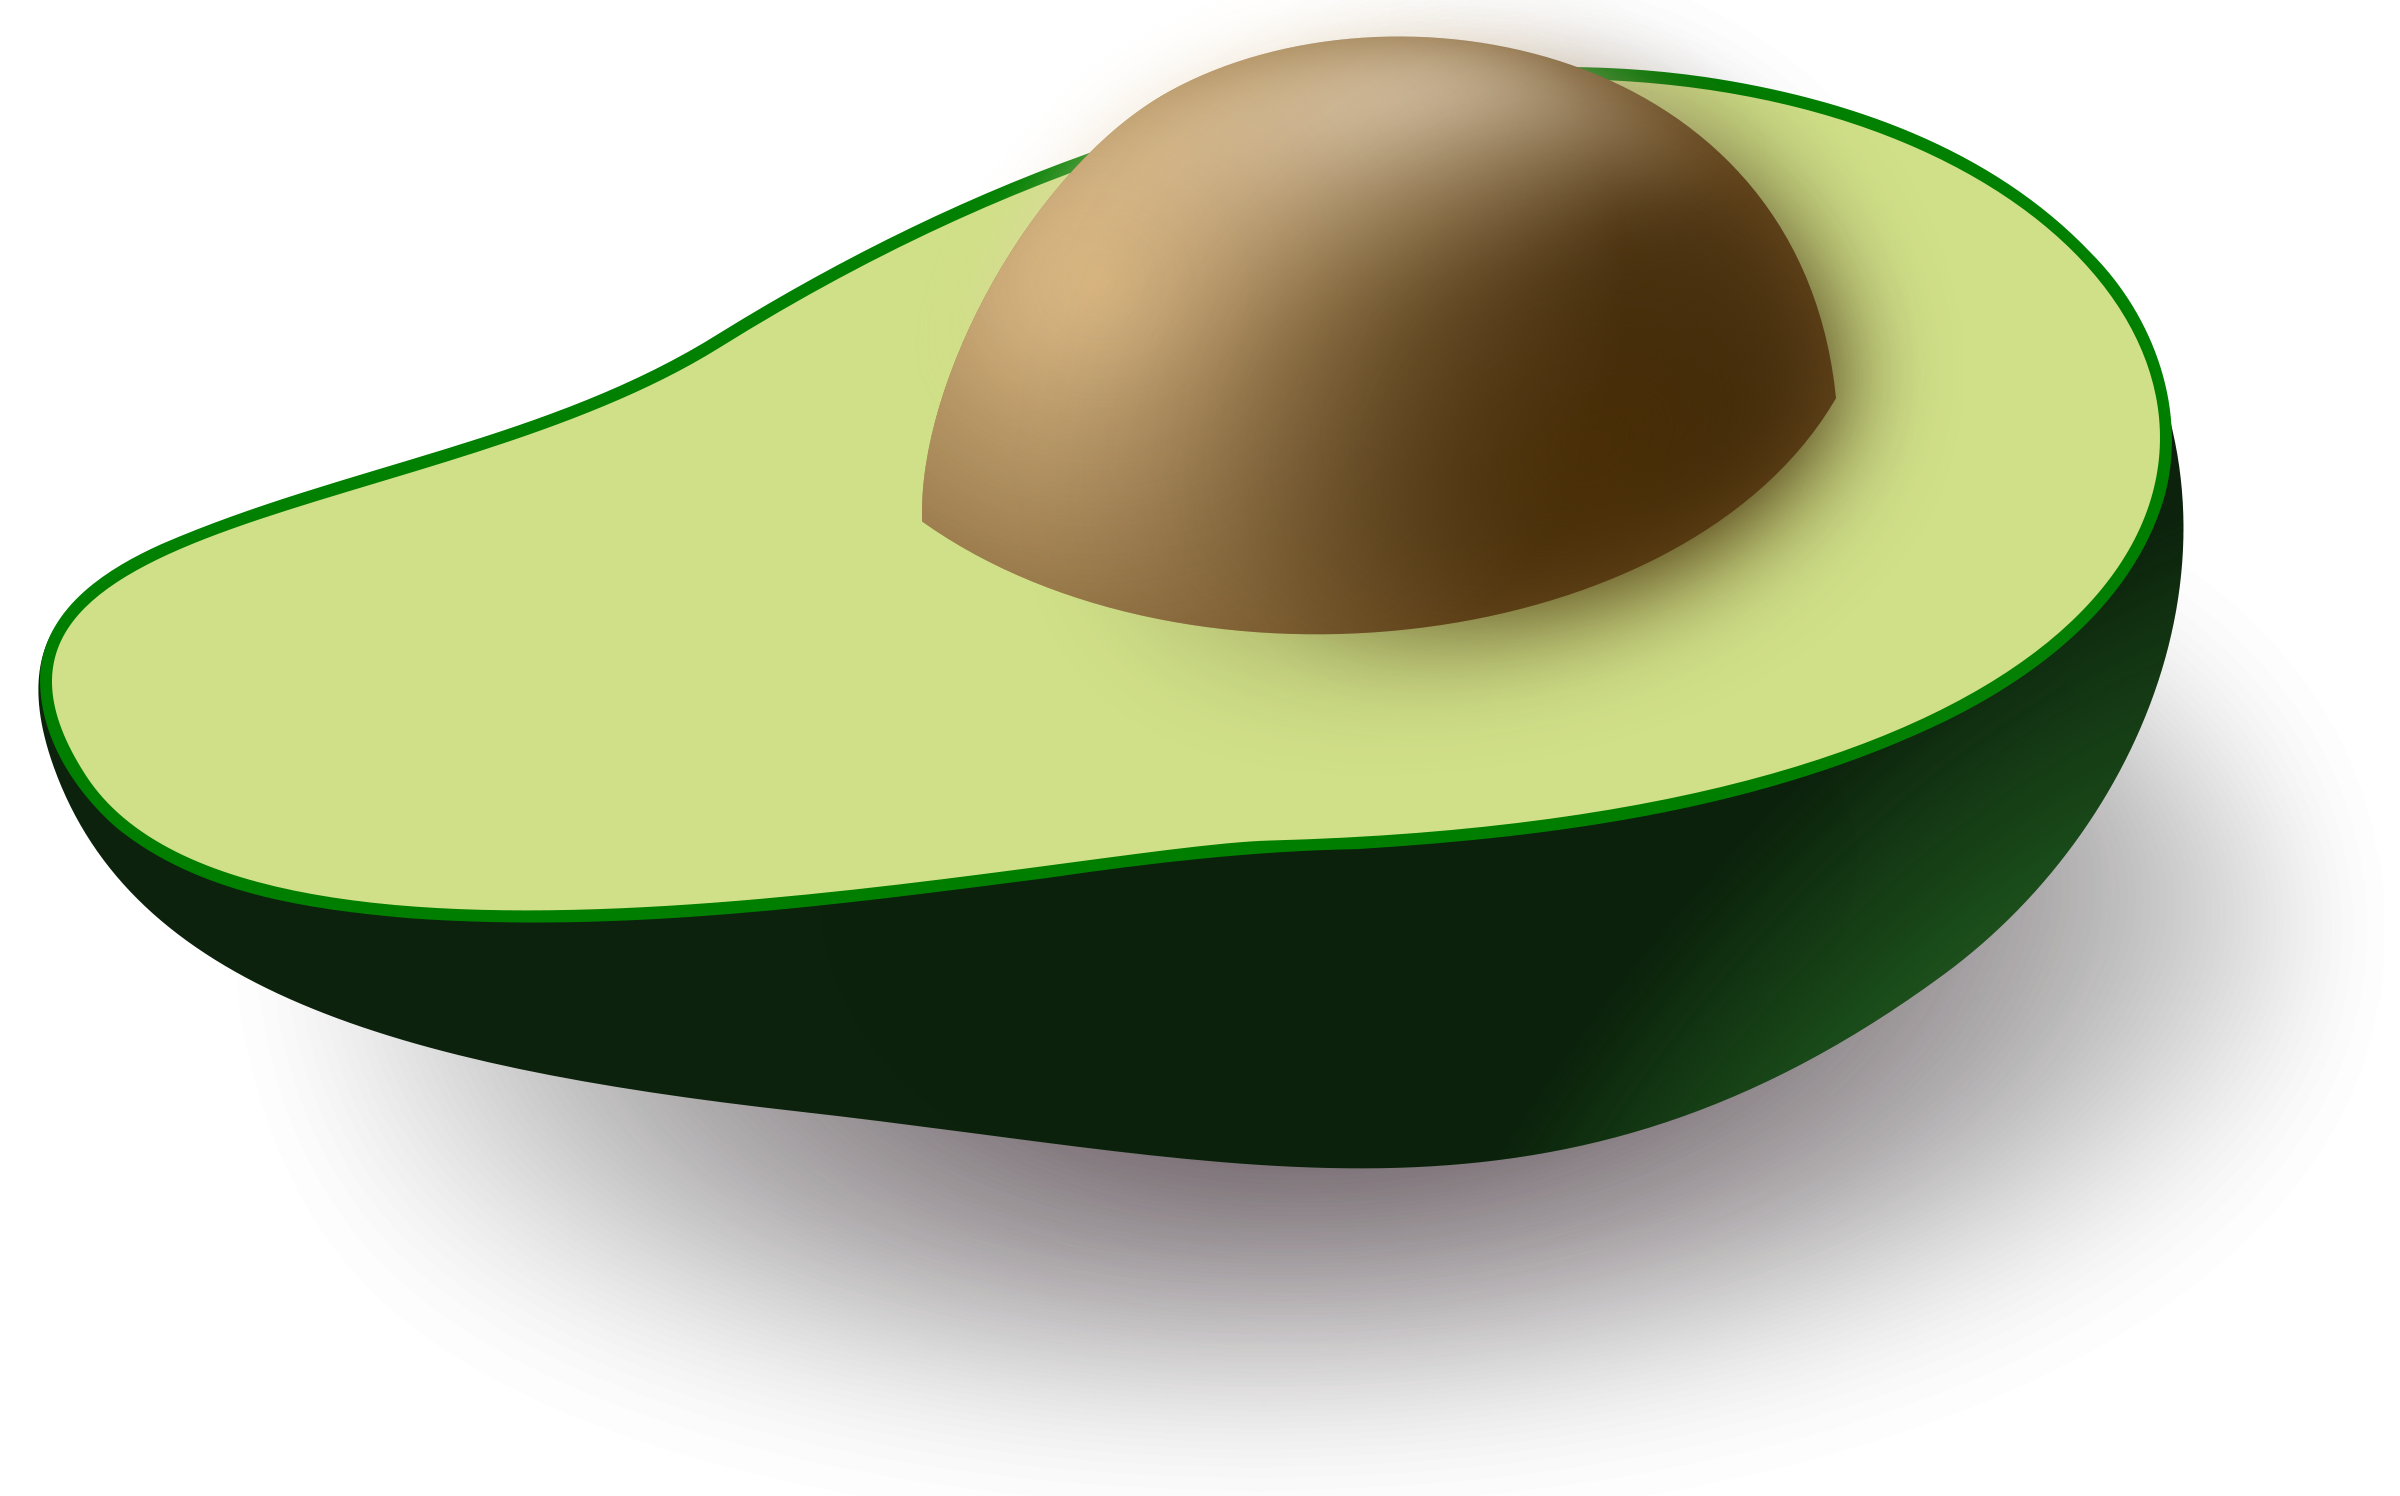 Avocado clipart transparent background. Png images free download